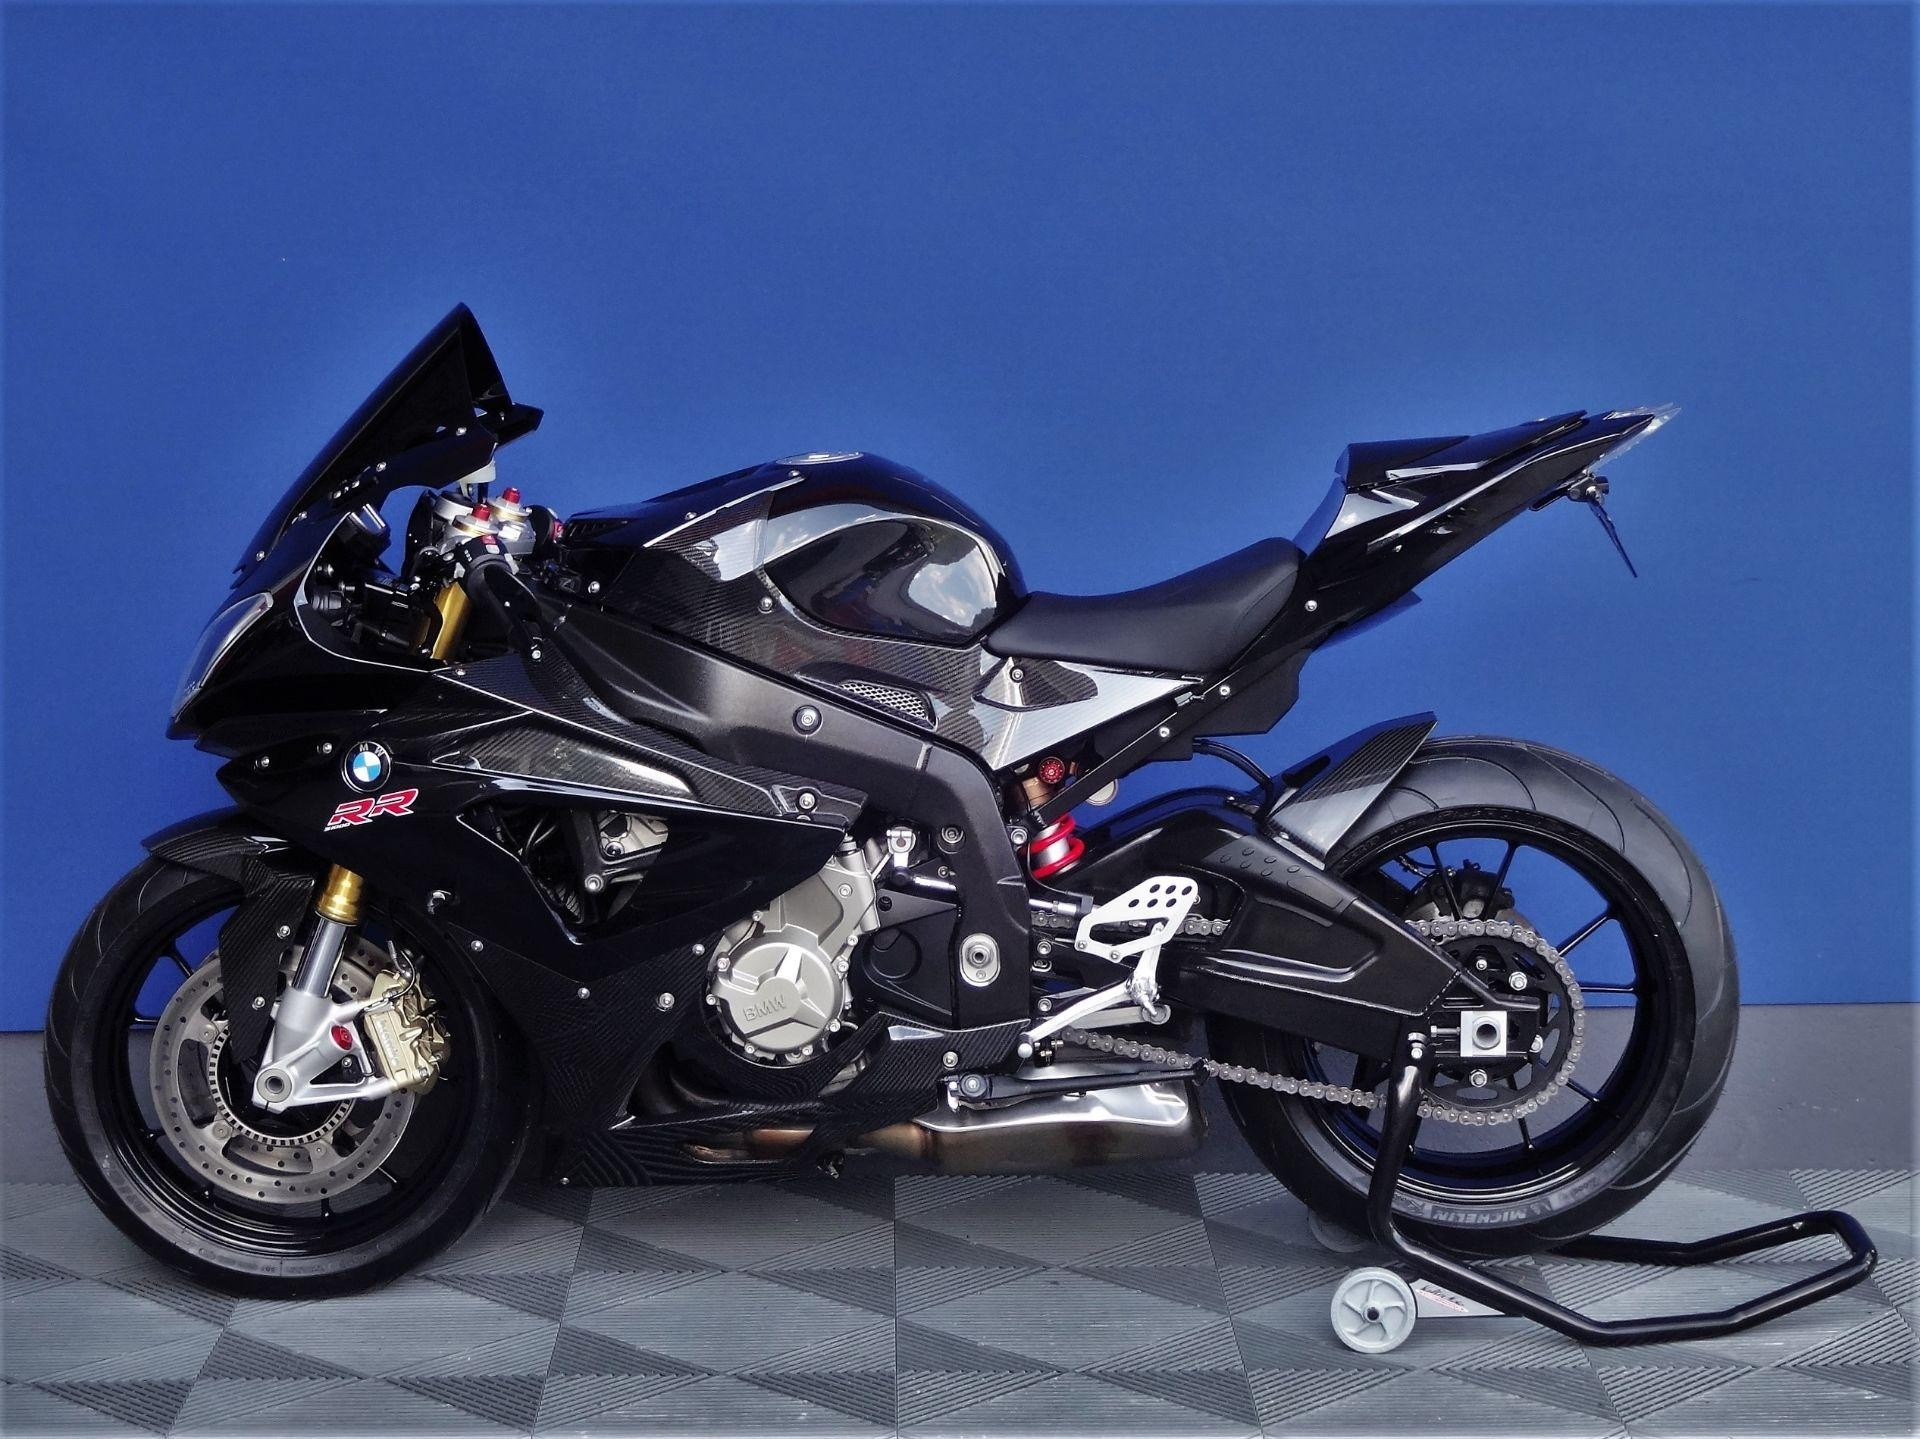 bmw s 1000 rr abs black beast vogel motorbikes sch pfheim occasion. Black Bedroom Furniture Sets. Home Design Ideas